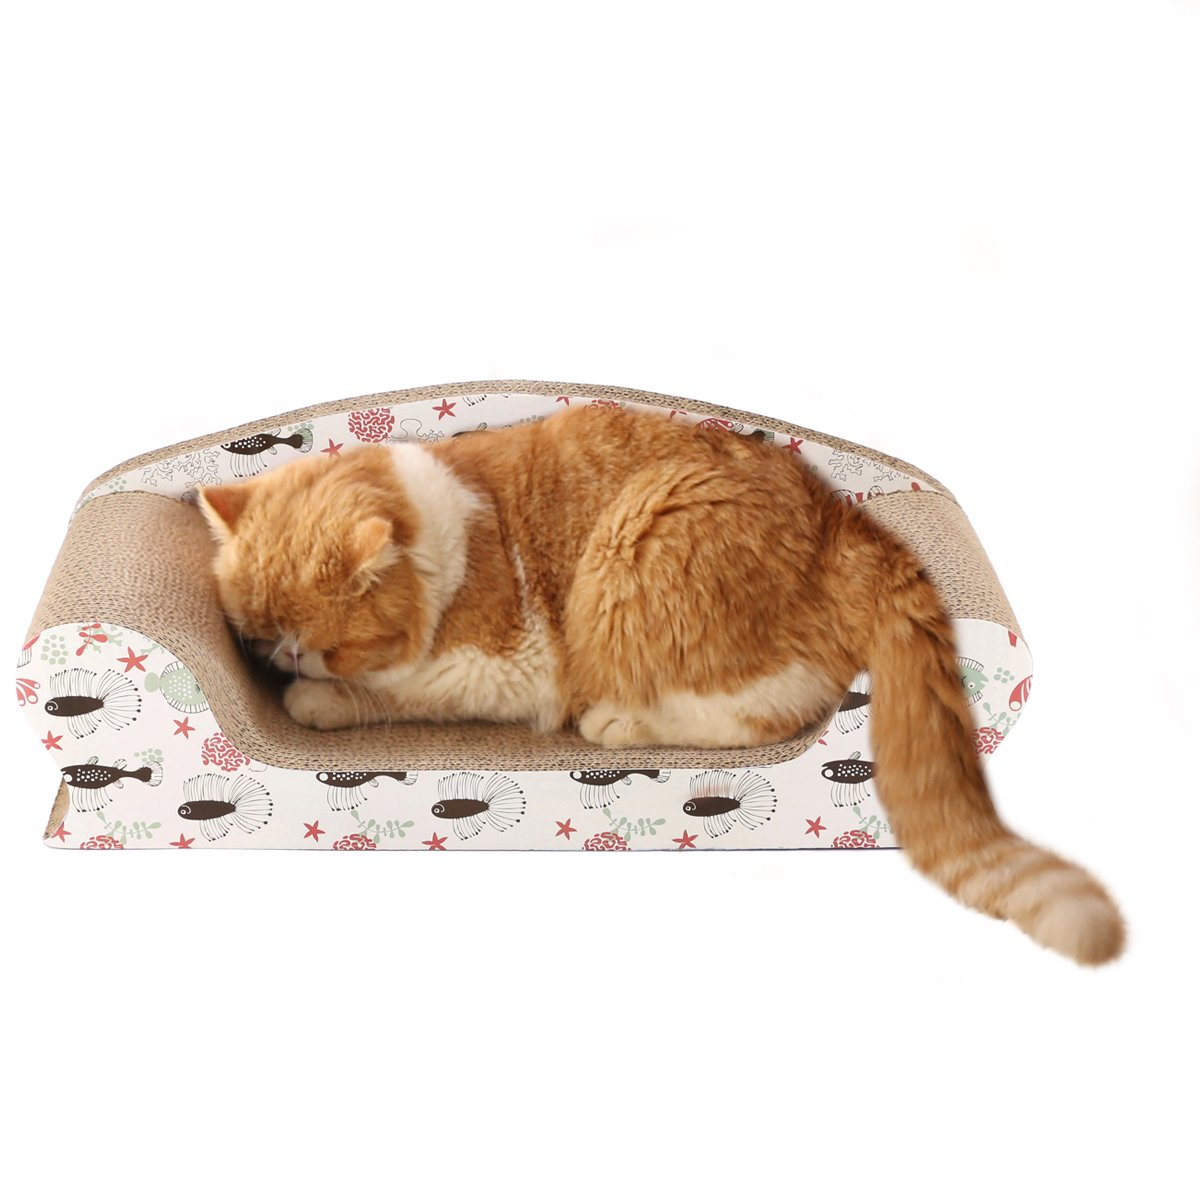 Vivaglory Cat Scratchers Sofa Lounge for Large Cats, Kitty Cardboard Scratch Bed, Kitten Scratching Couch for Rest and Furniture Protect with Catnip, Sea World Print